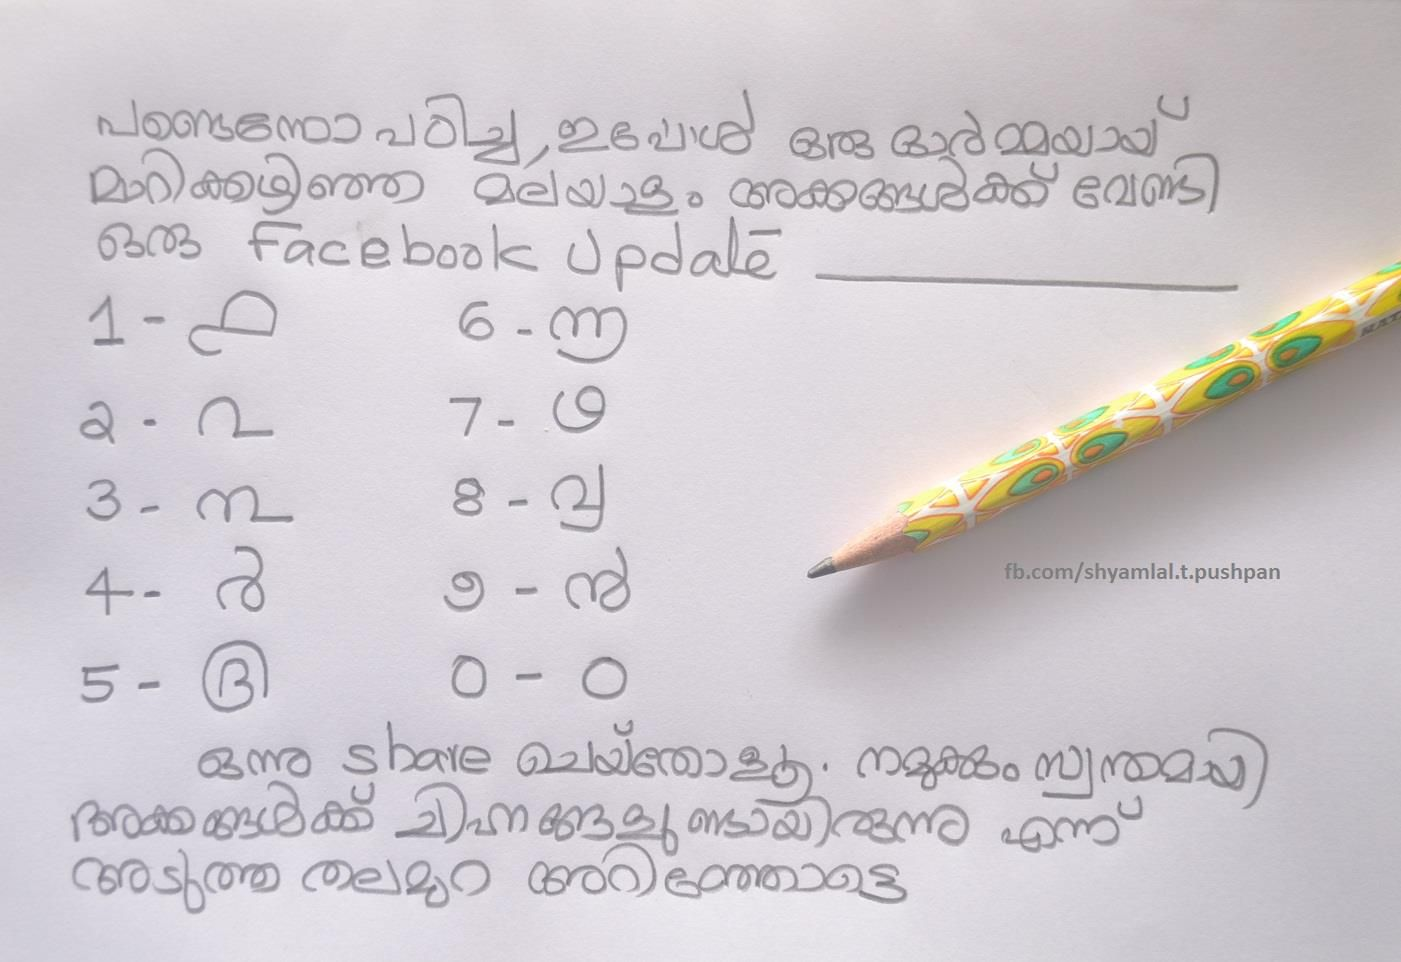 malayalam numbers on Facebook